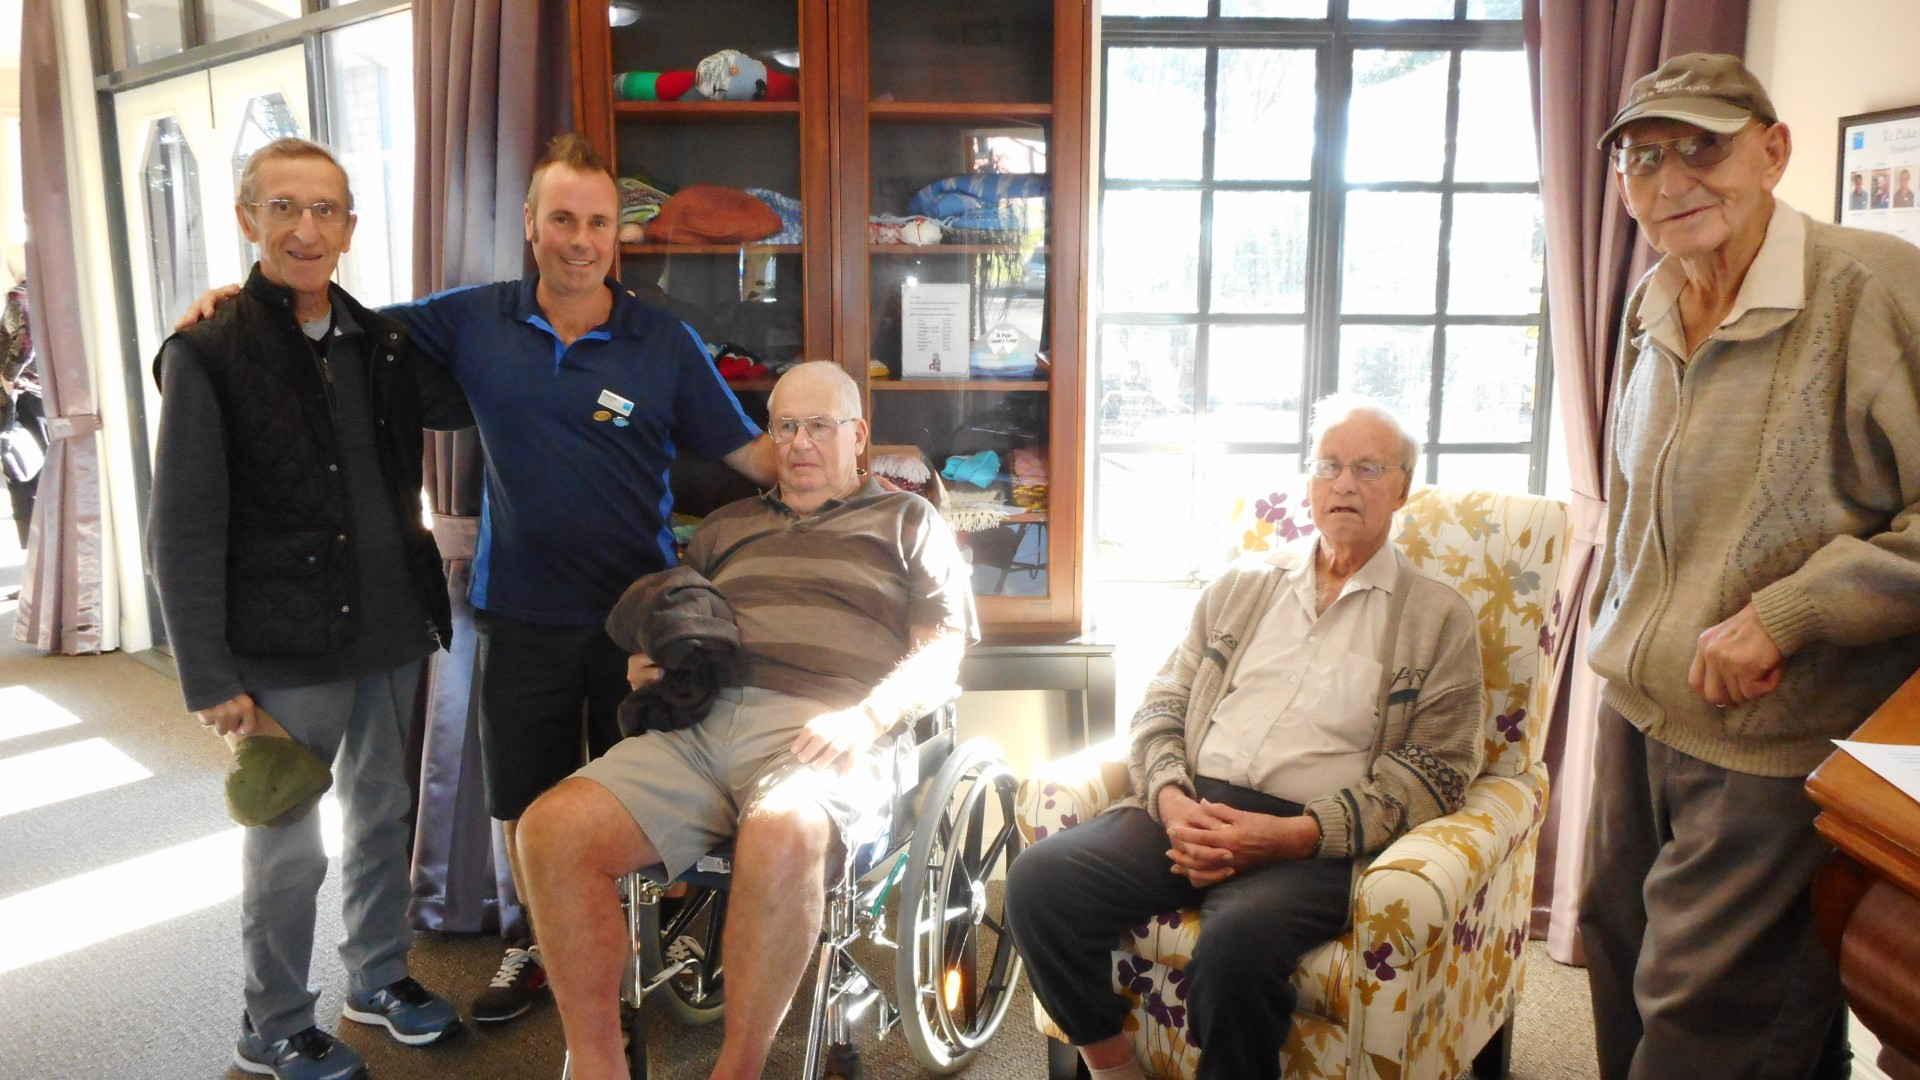 (L to R) Resident Ray Vital, Bupa Te Puke Country Lodge Care Home Activities Coordinator, Dwayne Ferguson, residents Bill King, Bruce Galbraith, Morrie Pope.